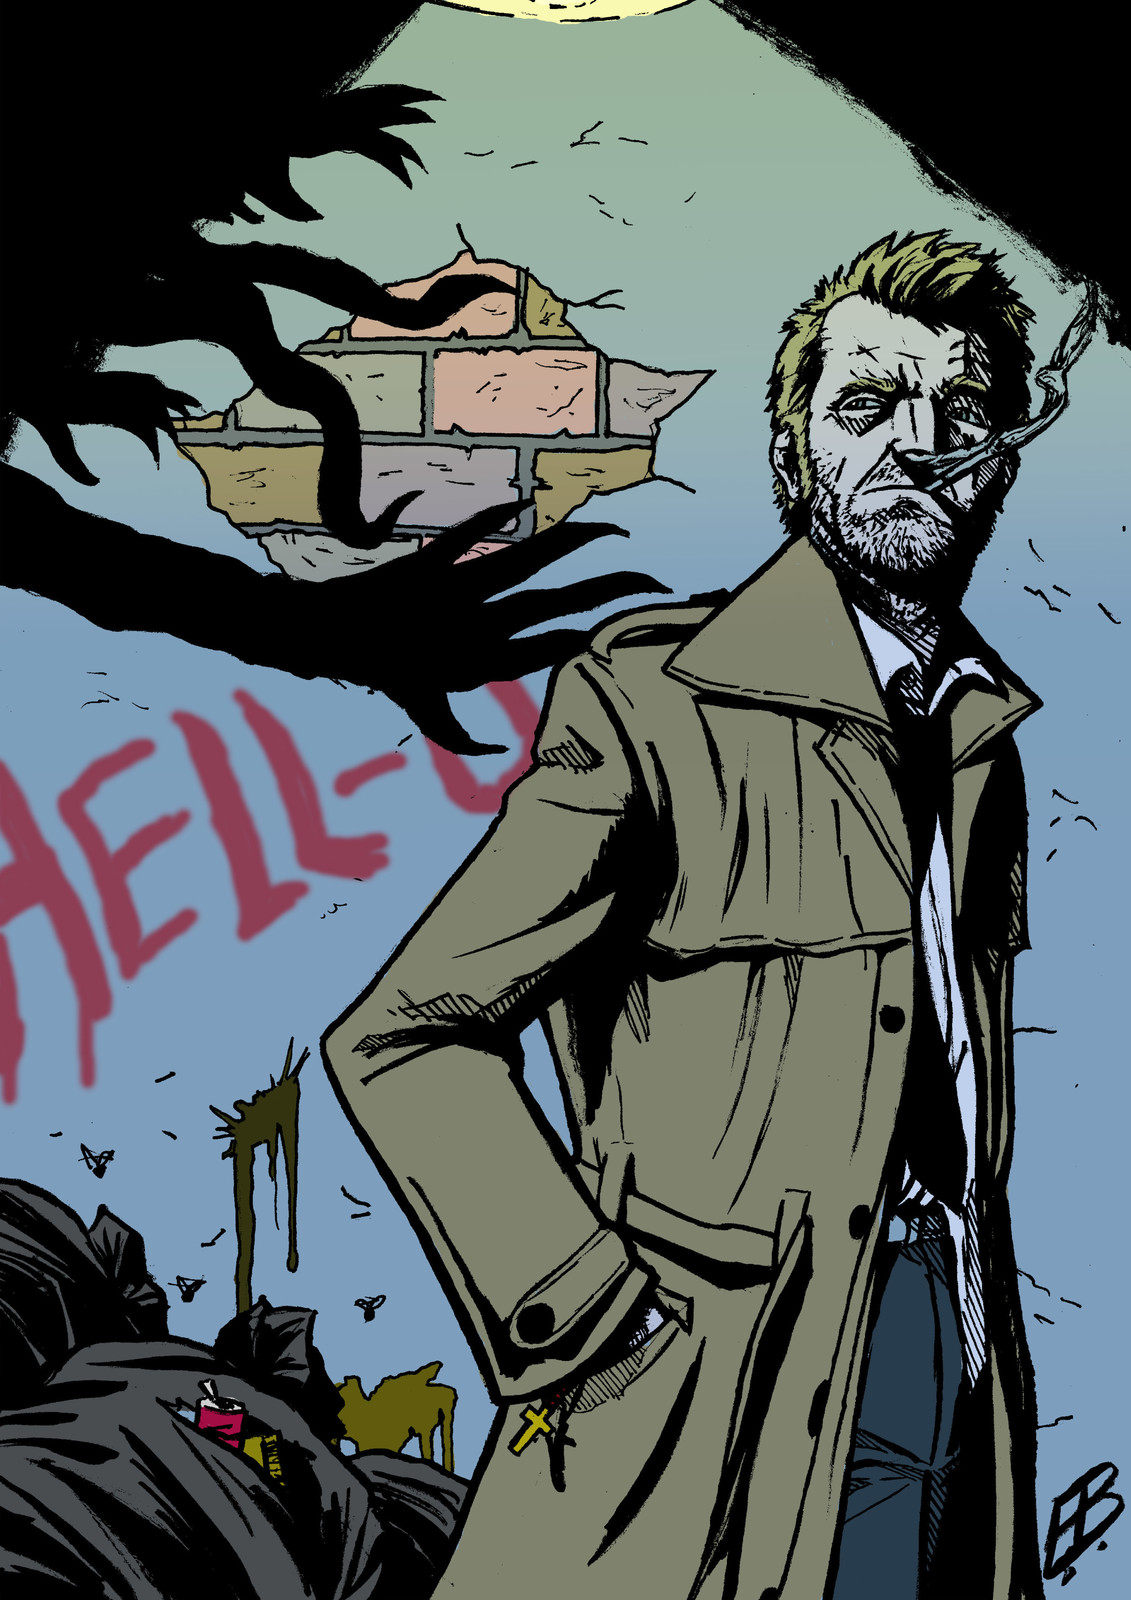 Alternate Colours, based on a palette from a panel of Hellblazer: City of Demons (Ps)